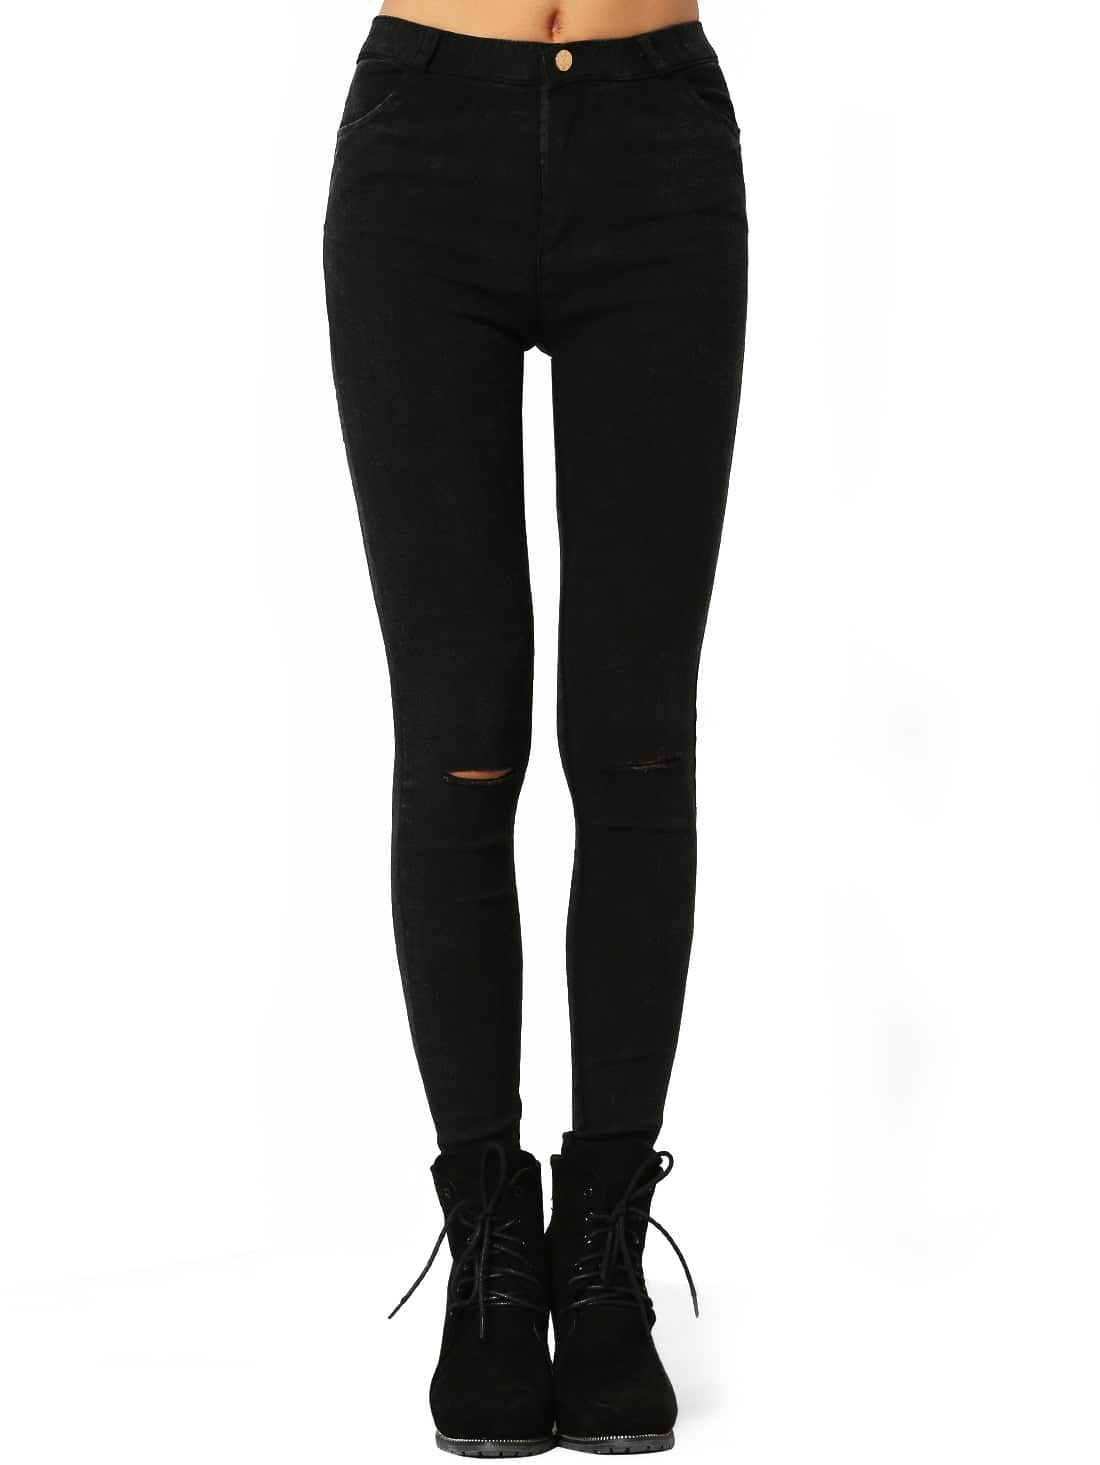 http://it.shein.com/Black-Skinny-Ripped-Denim-Pant-p-246622-cat-1740.html